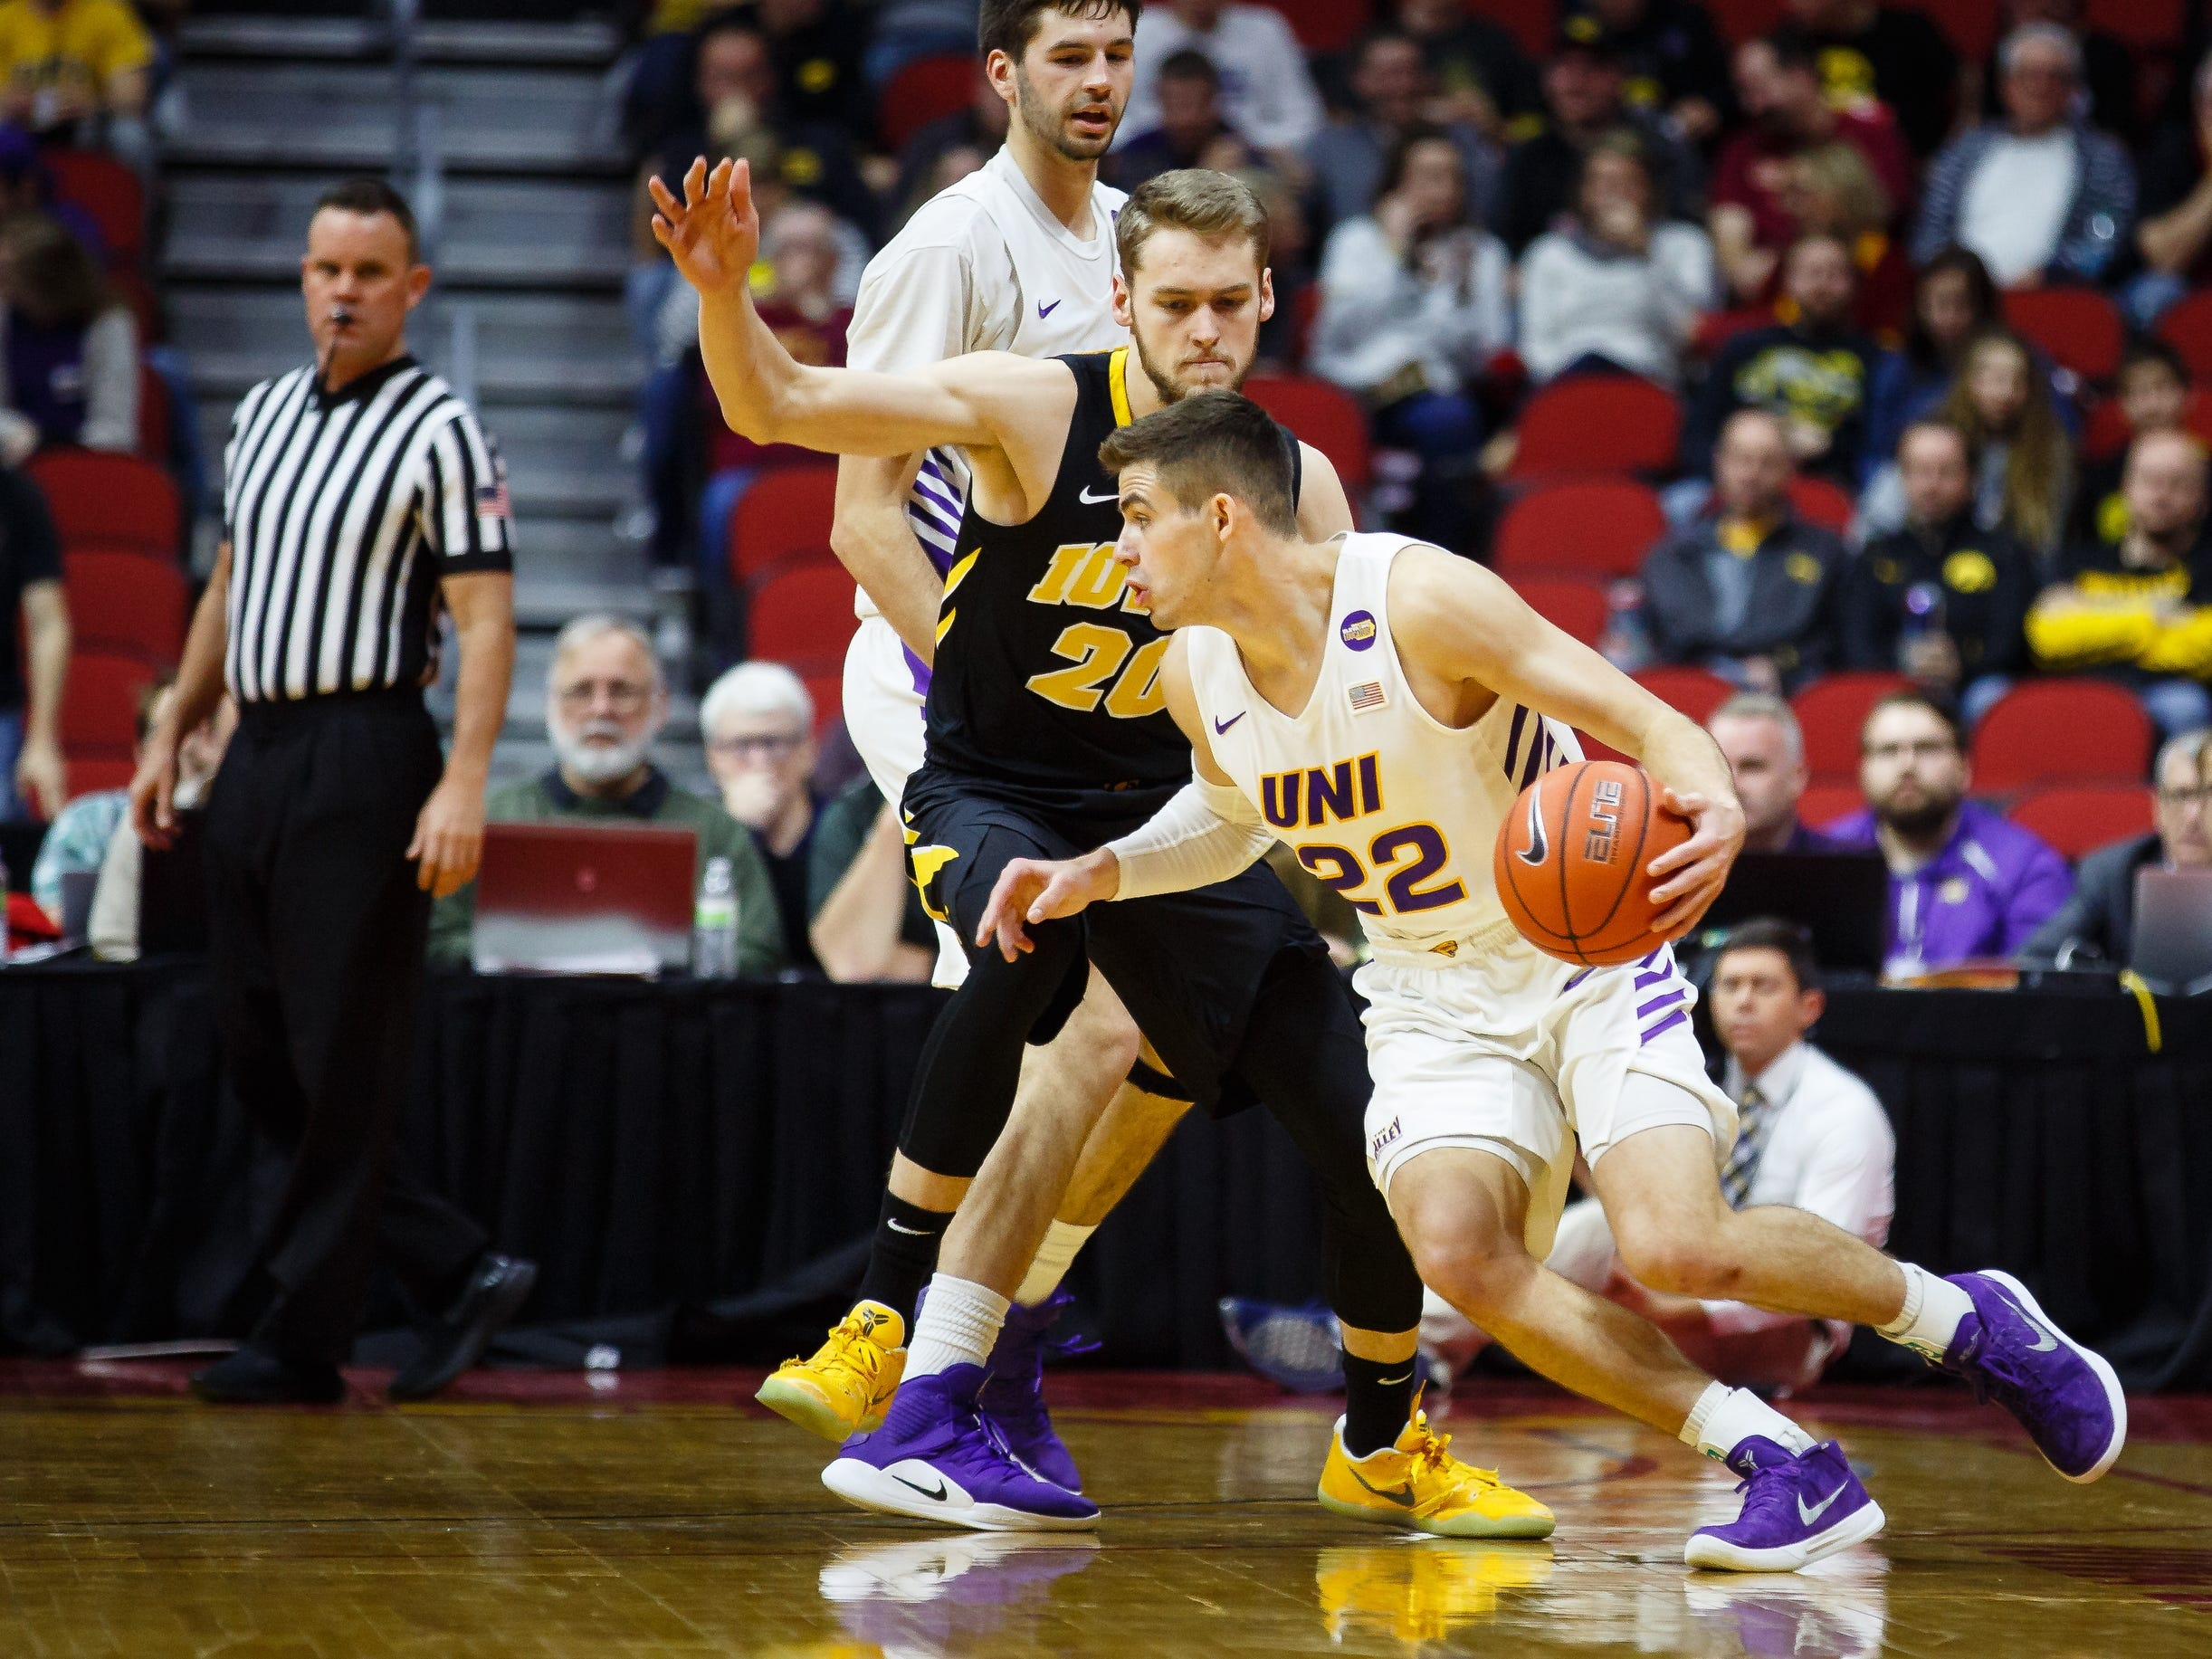 UNI's WyattÊLohaus (22) dribbles around Iowa's Riley Till (20) during their basketball game at the Hy-Vee Classic on Saturday, Dec. 15, 2018, in Des Moines. Iowa would go on to defeat UNI 77-54.